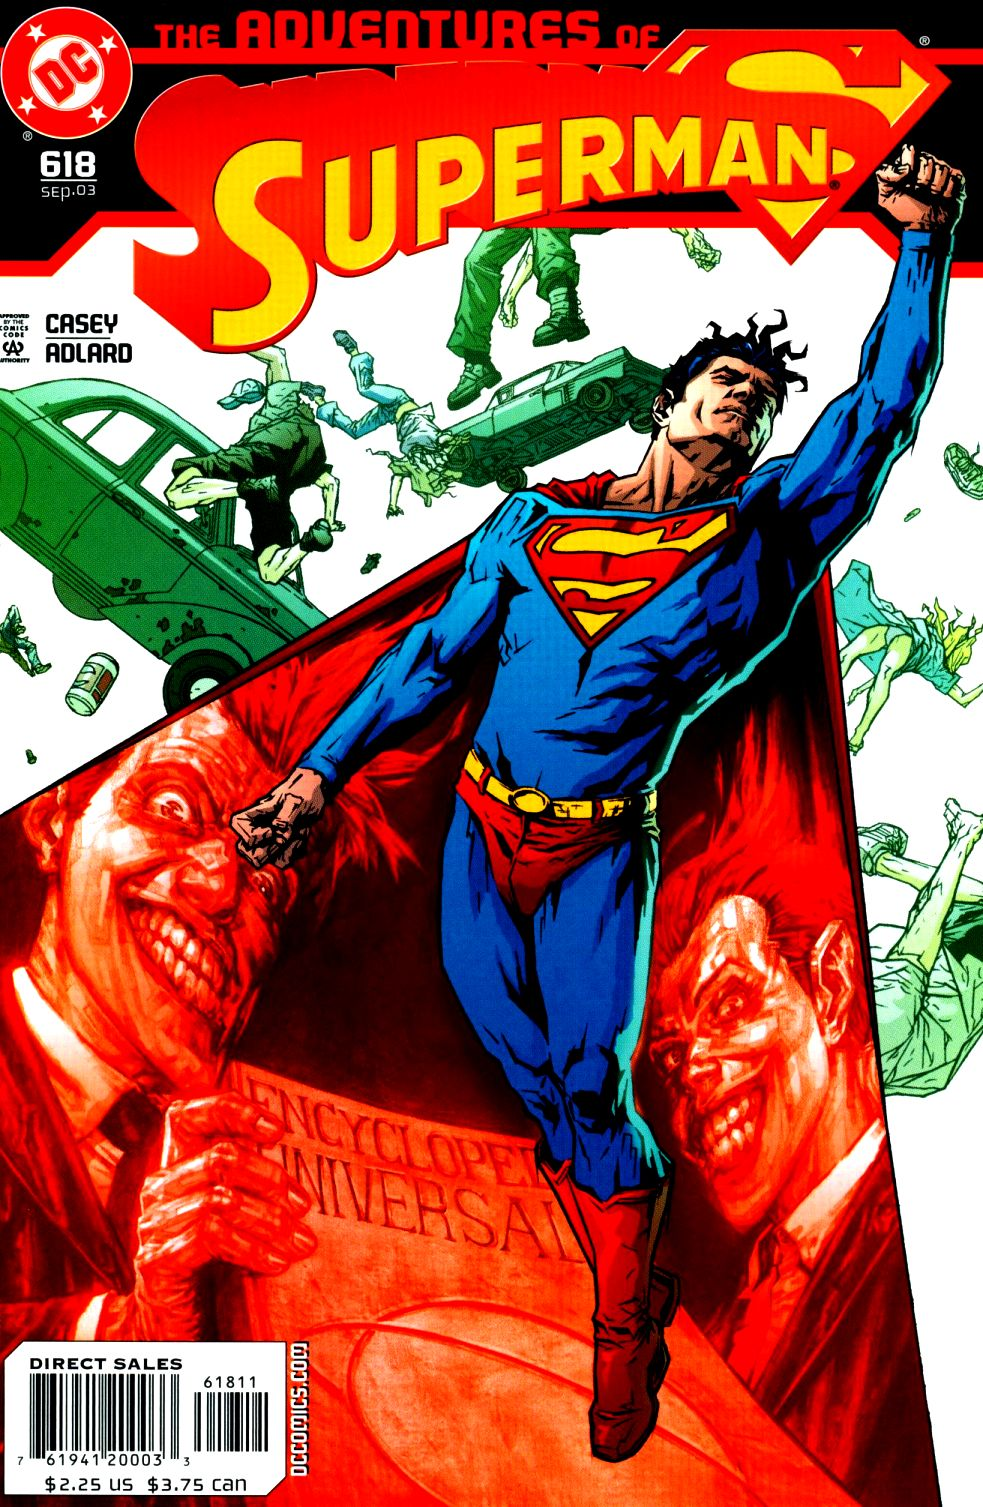 Read online Adventures of Superman (1987) comic -  Issue #618 - 1